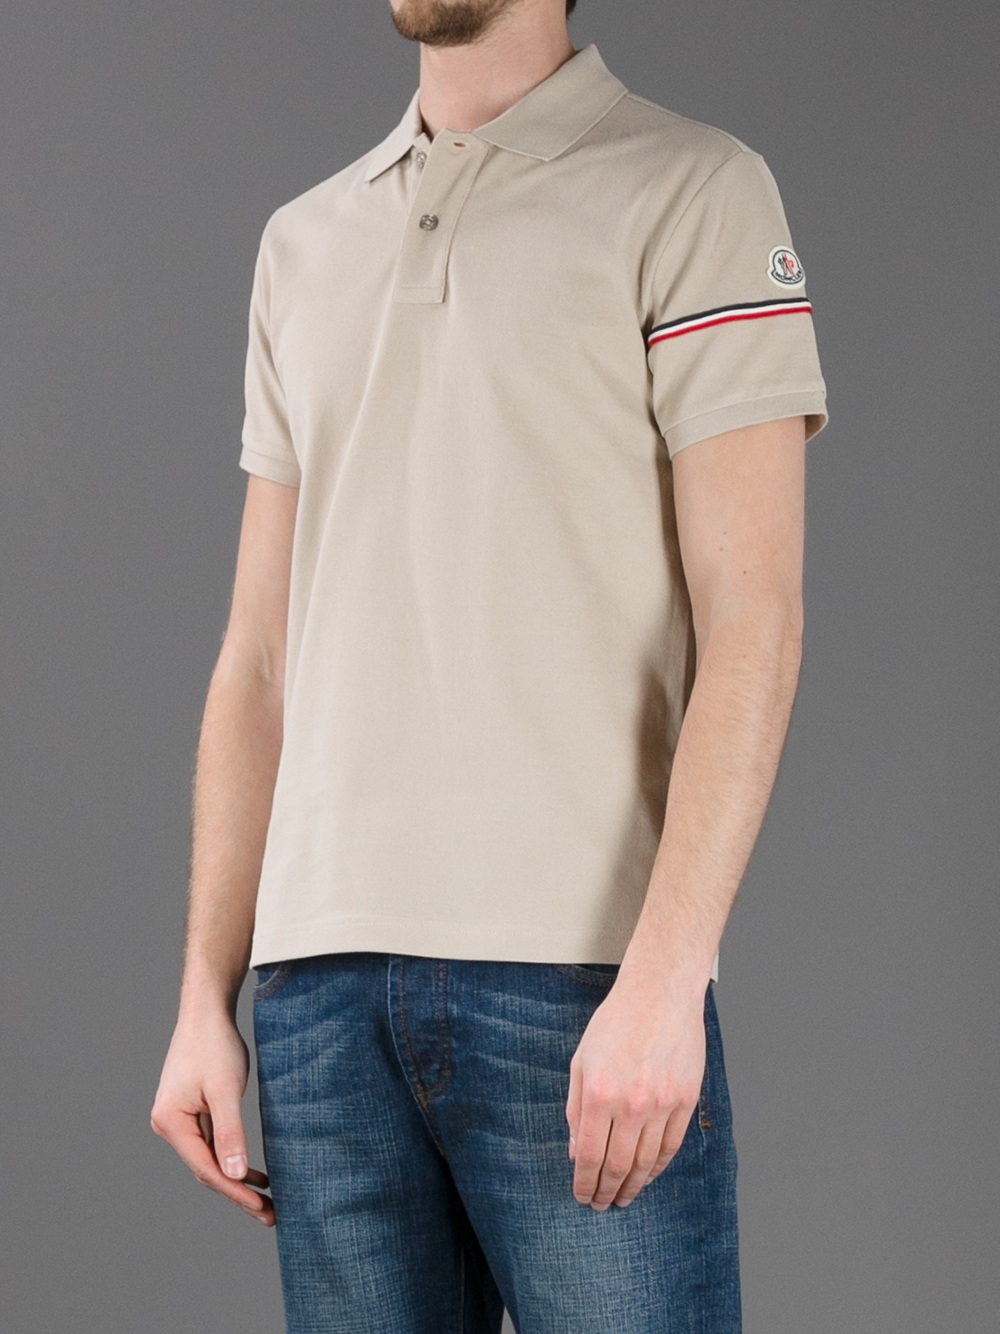 moncler polo shirt in beige for men lyst. Black Bedroom Furniture Sets. Home Design Ideas